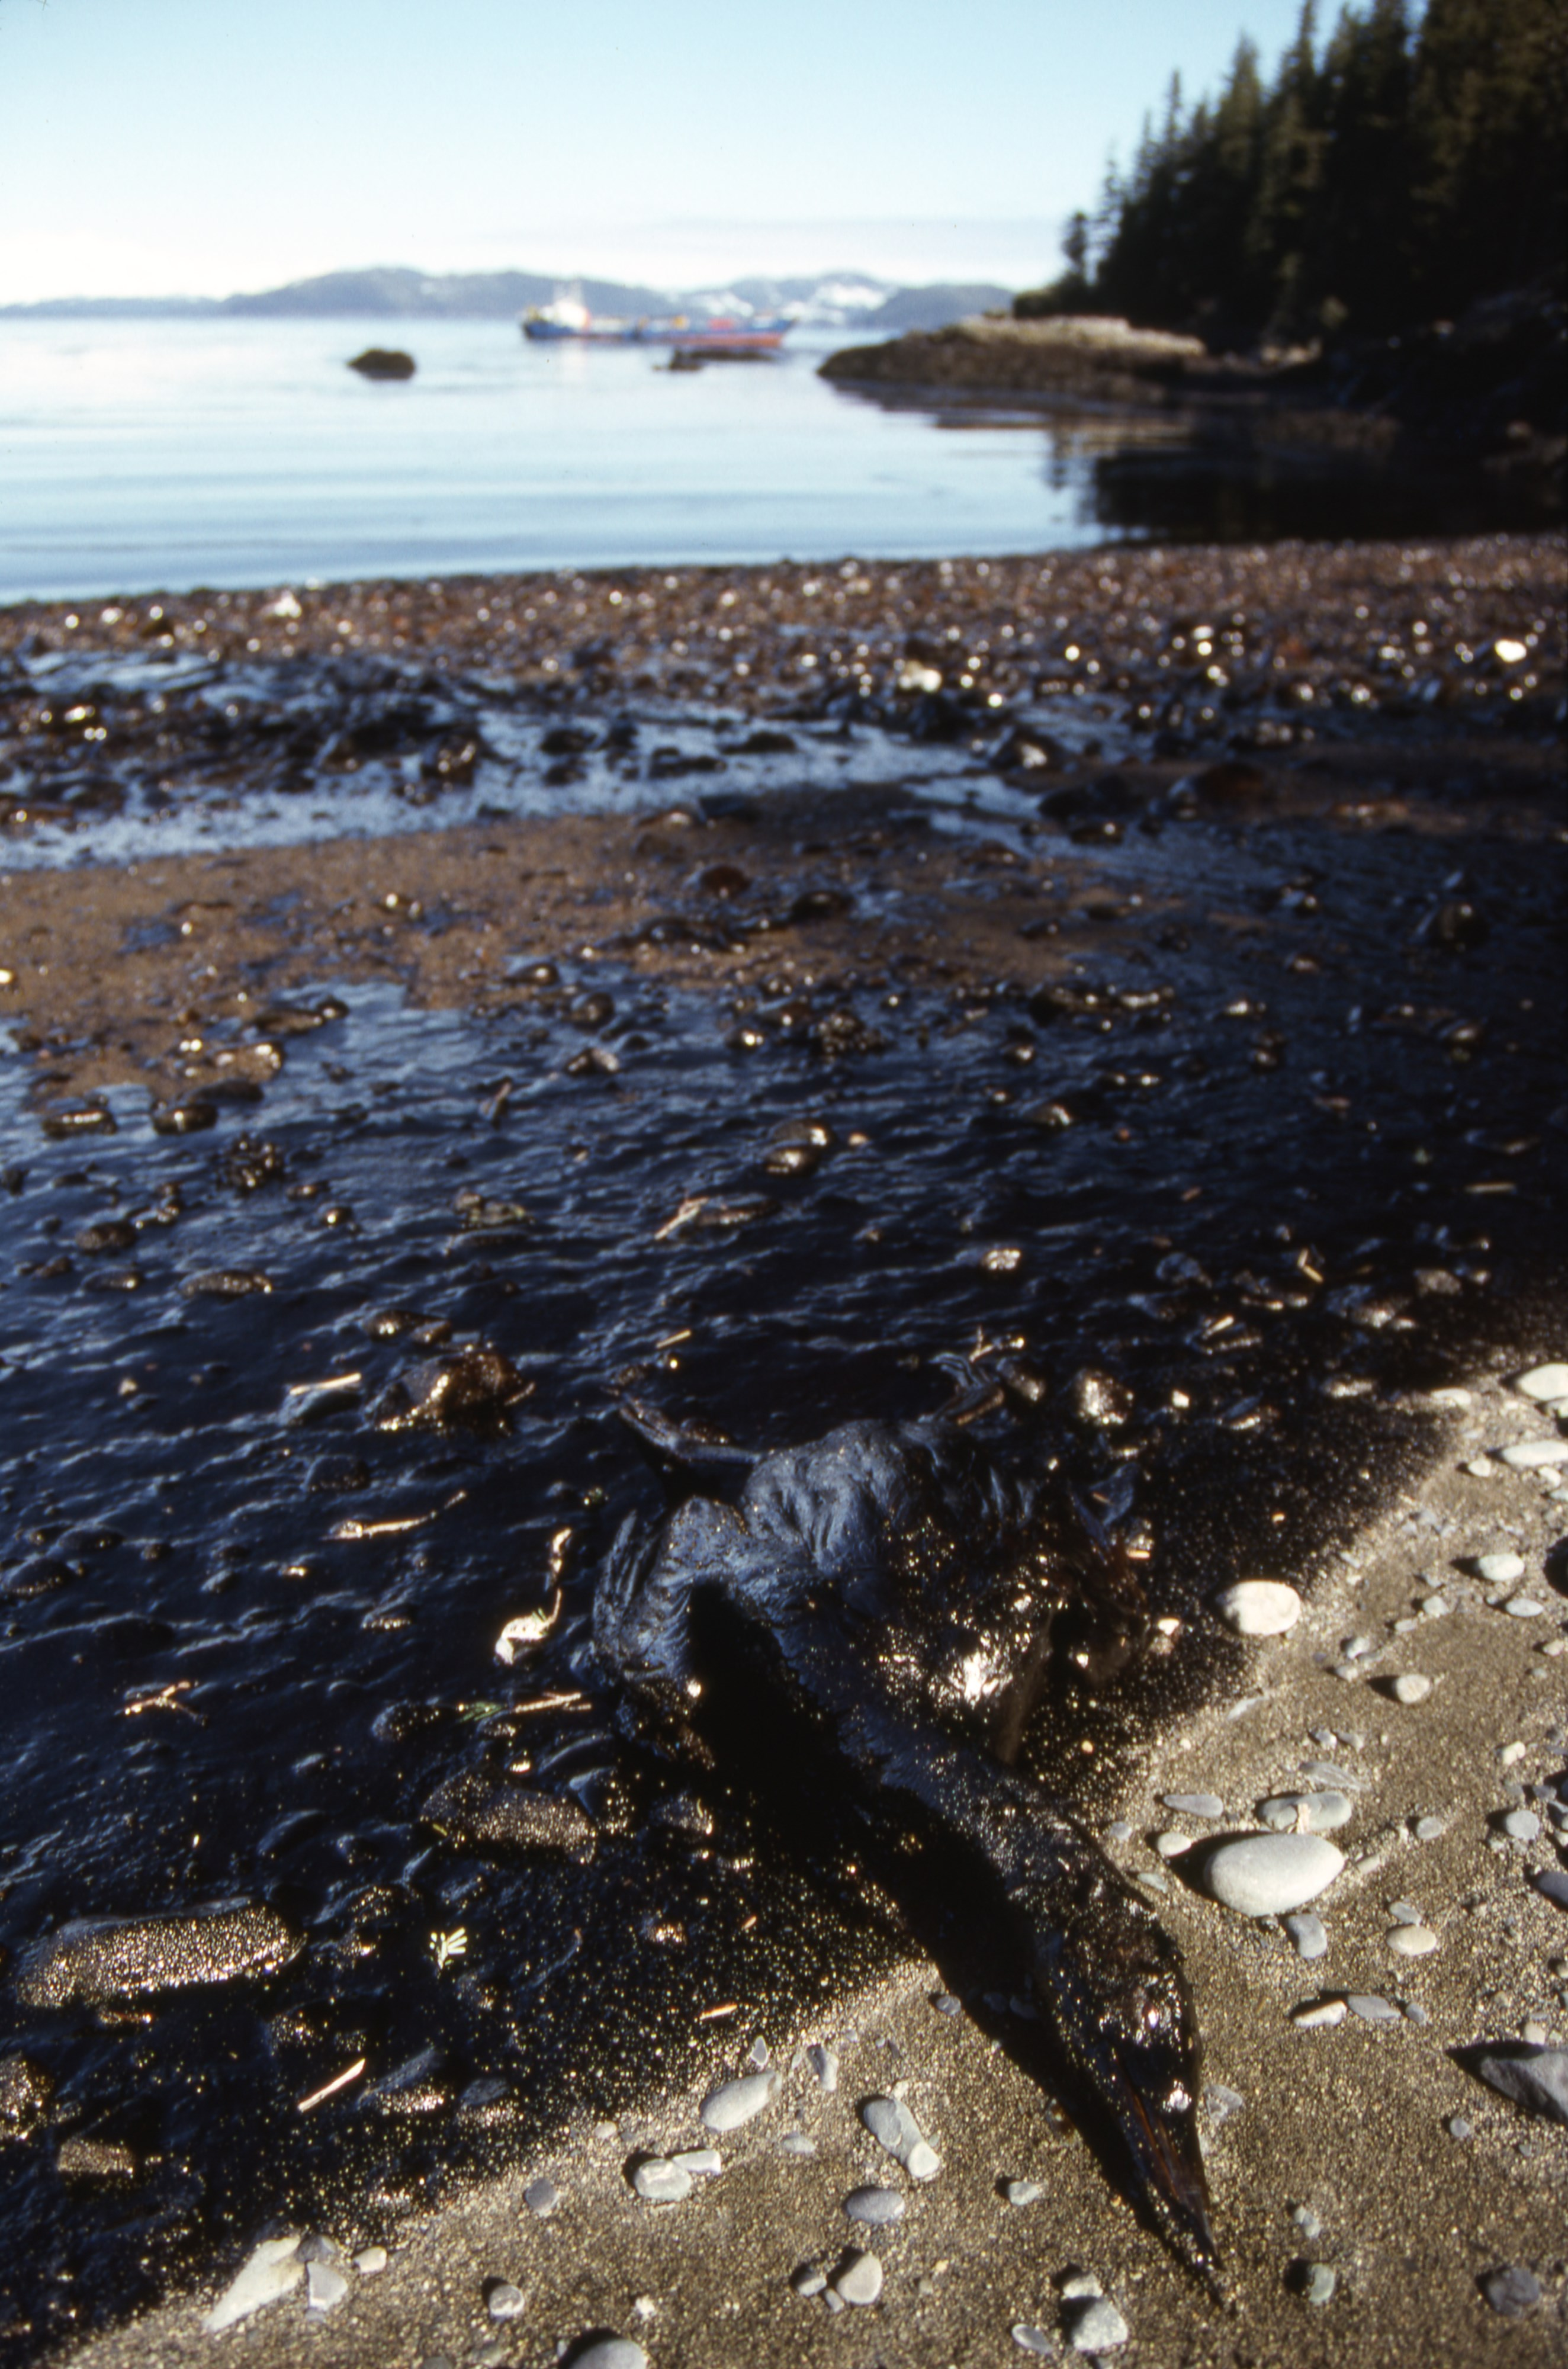 View record for Exxon Valdez Oil Spill photographs from Fish and Game.